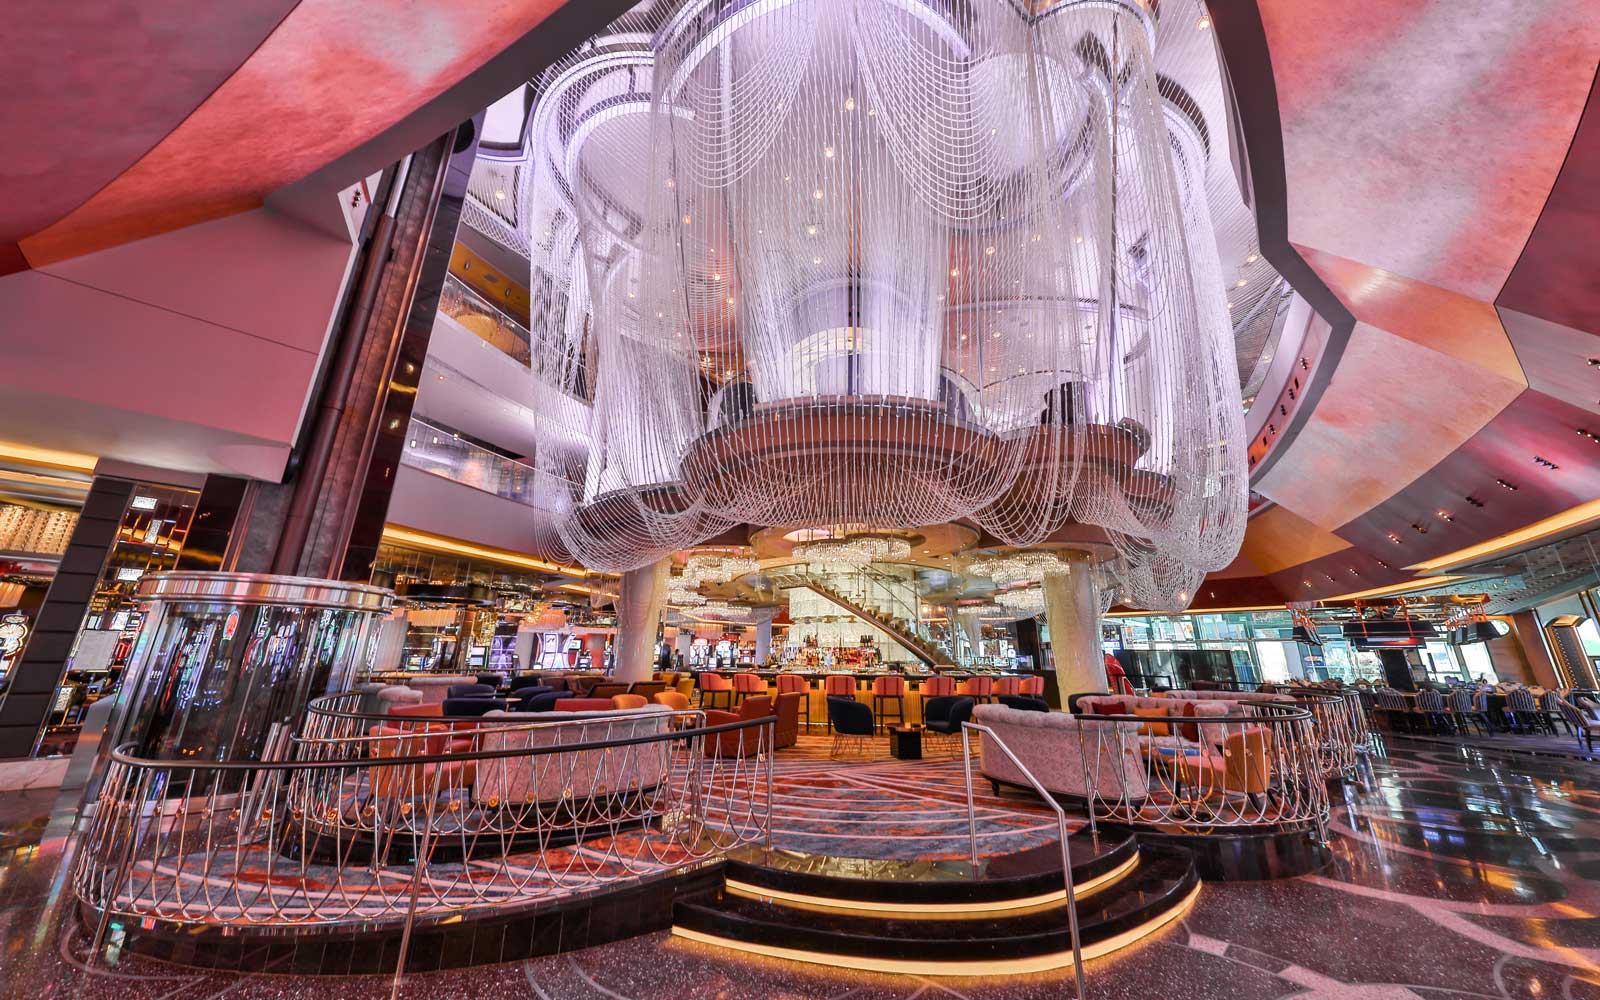 The Chandelier at The Cosmopolitan Las Vegas